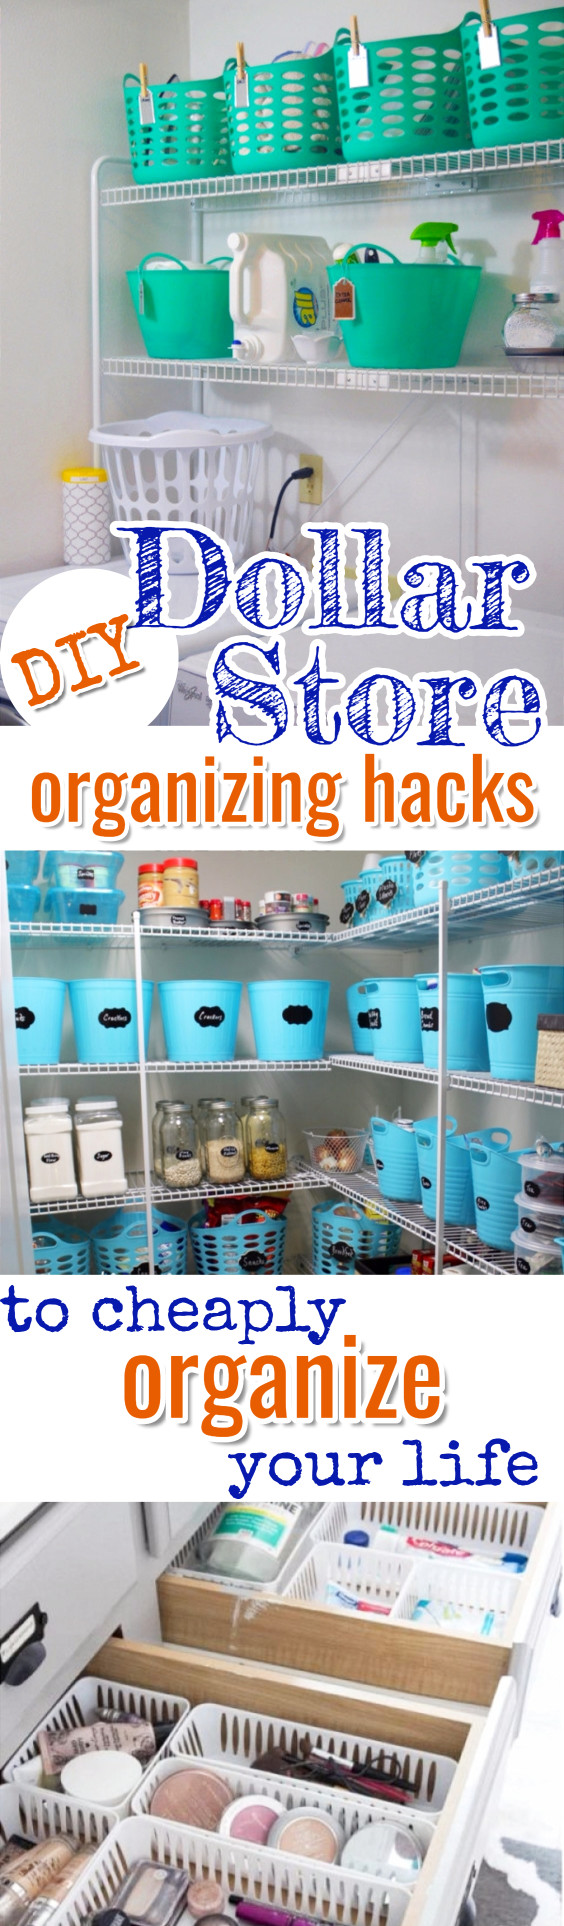 Cheap organizing ideas #getorganized #gettingorganized #organizationideasforthehome #diyhomedecor #organizingideas #cleaninghacks #lifehacks #diyideas